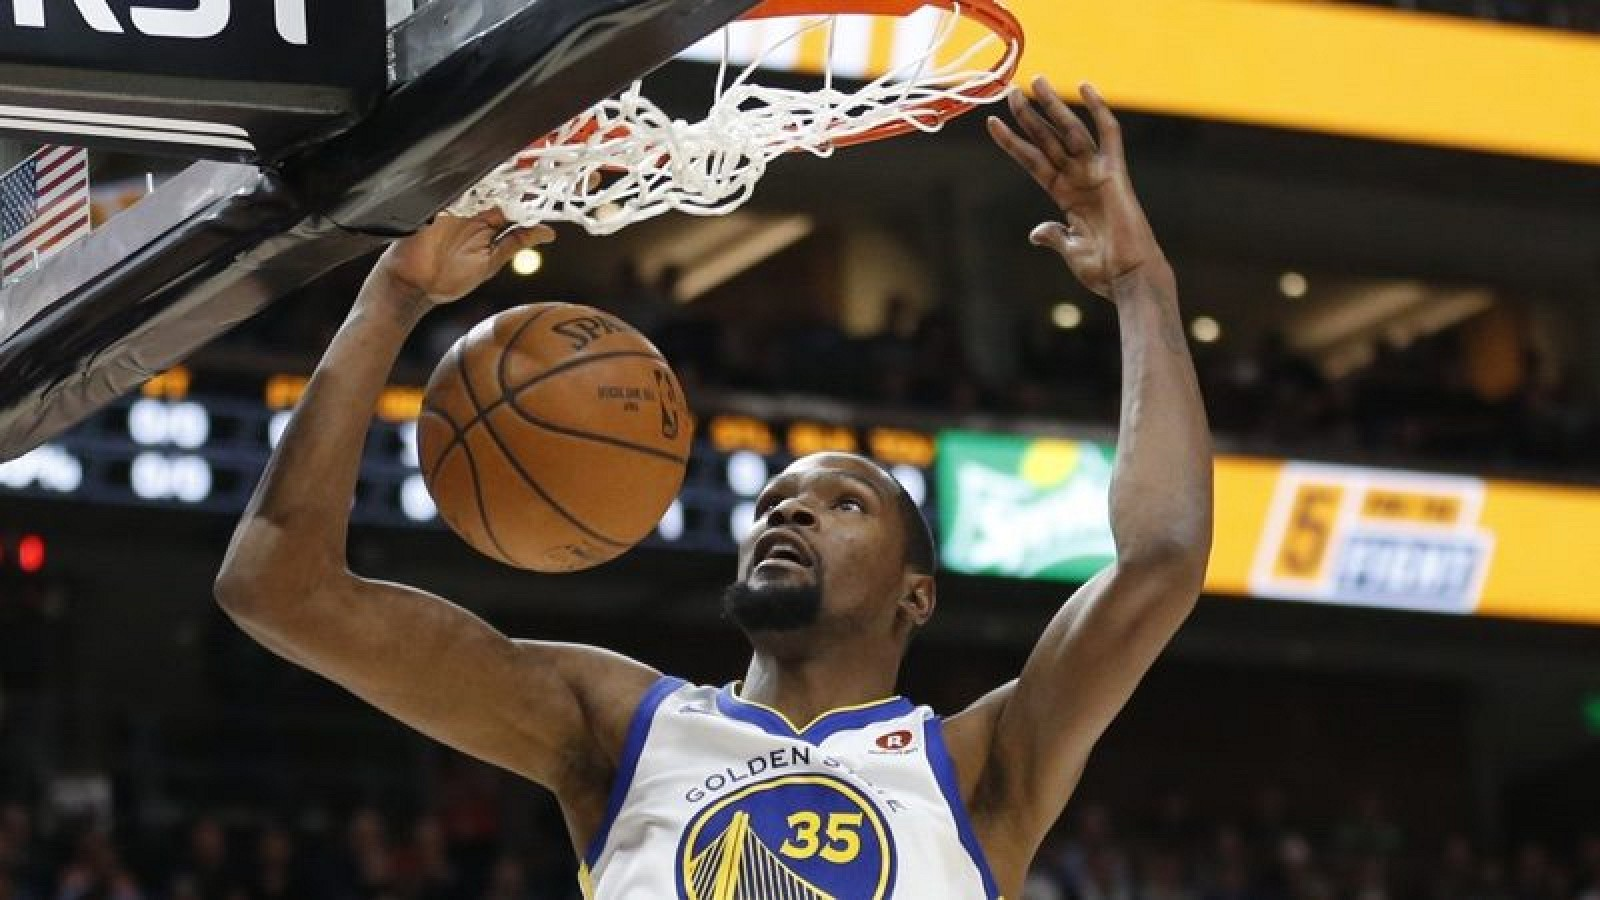 photo image Apple Working on 'Swagger' TV Show Based on NBA Star Kevin Durant